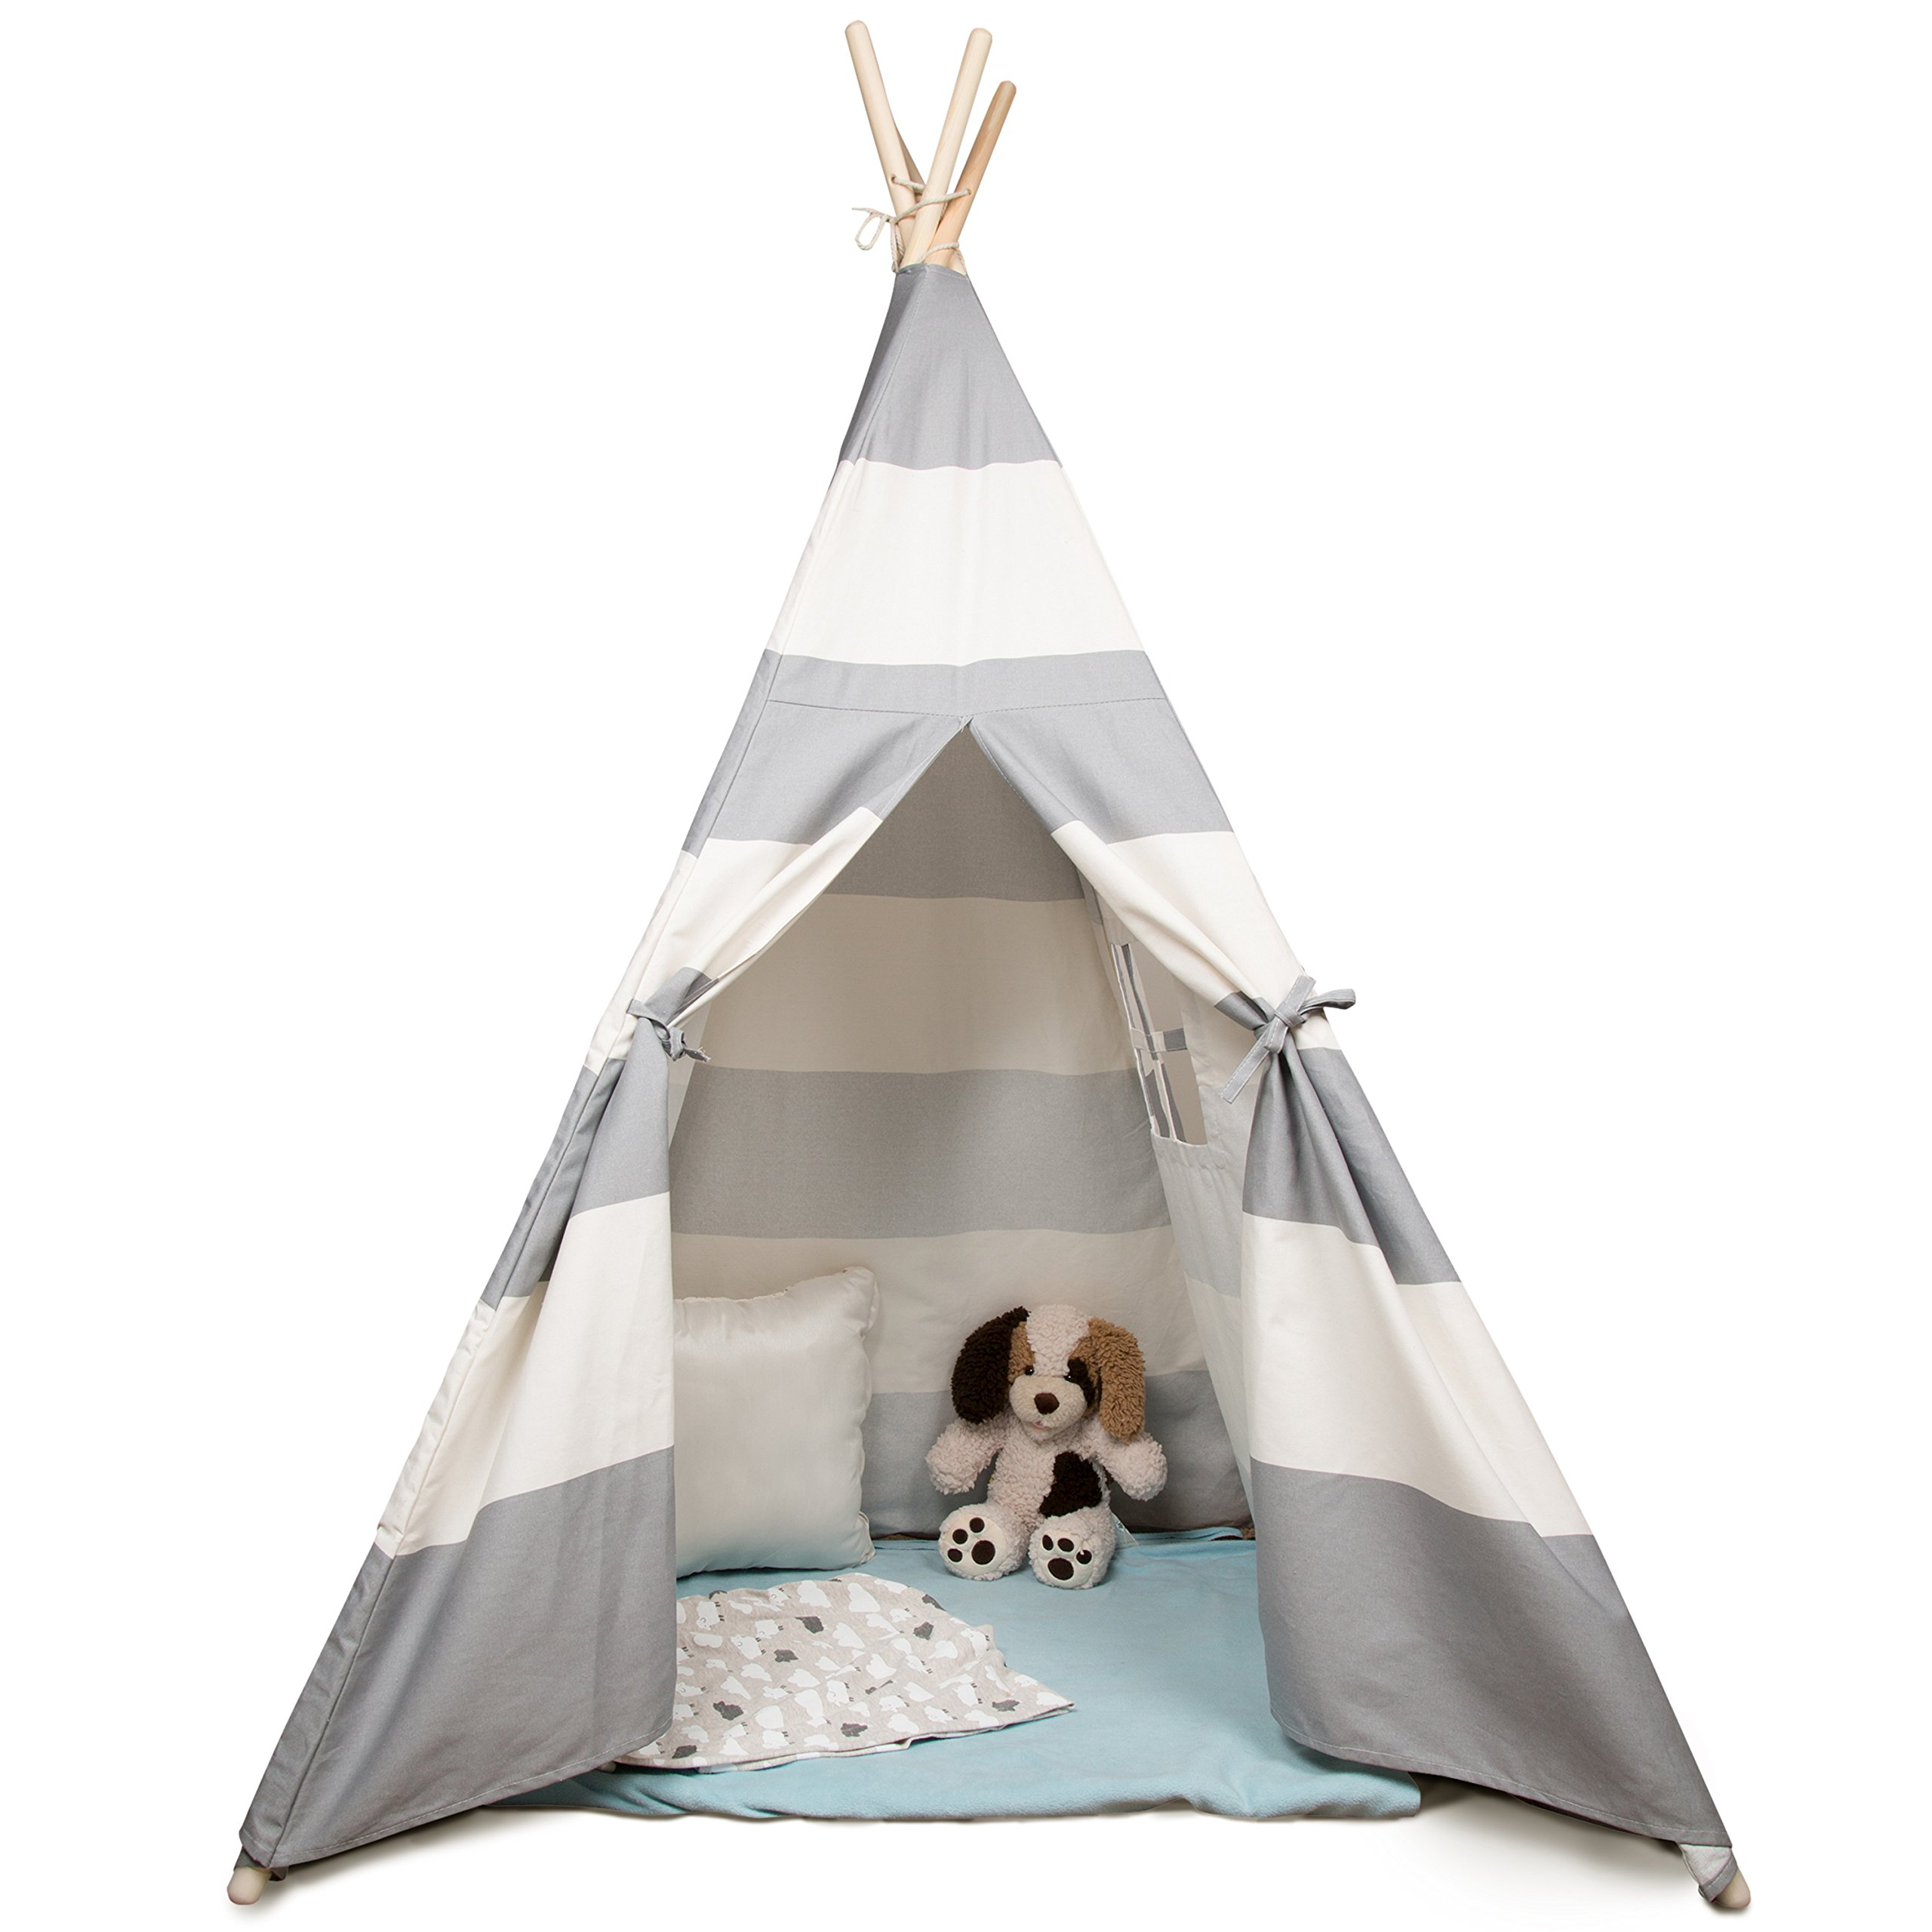 Svan Kid's Canvas Teepee Tent - Made w Cotton with Pine Wood Frame (White/Grey Stripes) - 5 ft Tall - Collapsible for easy storage